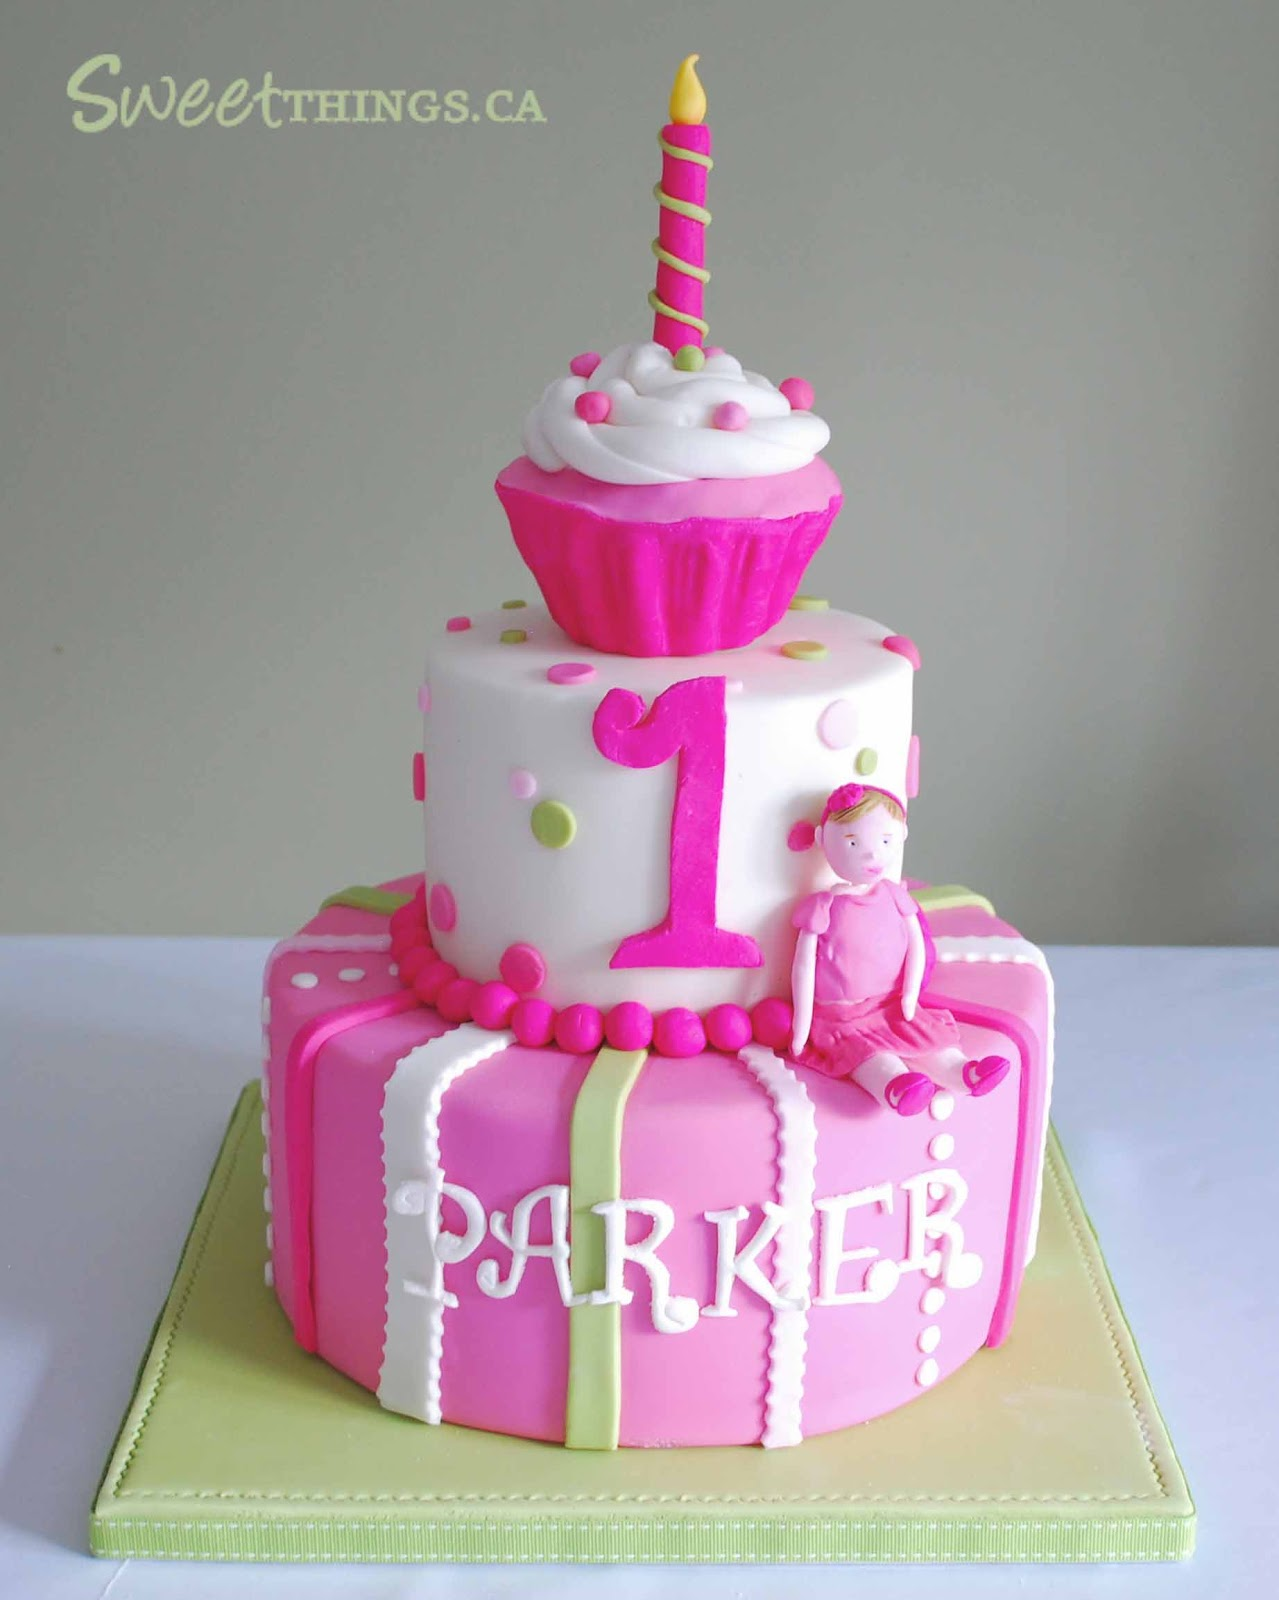 Cake Ideas Birthday Girl : SweetThings: Colorful 1st Birthday Cake